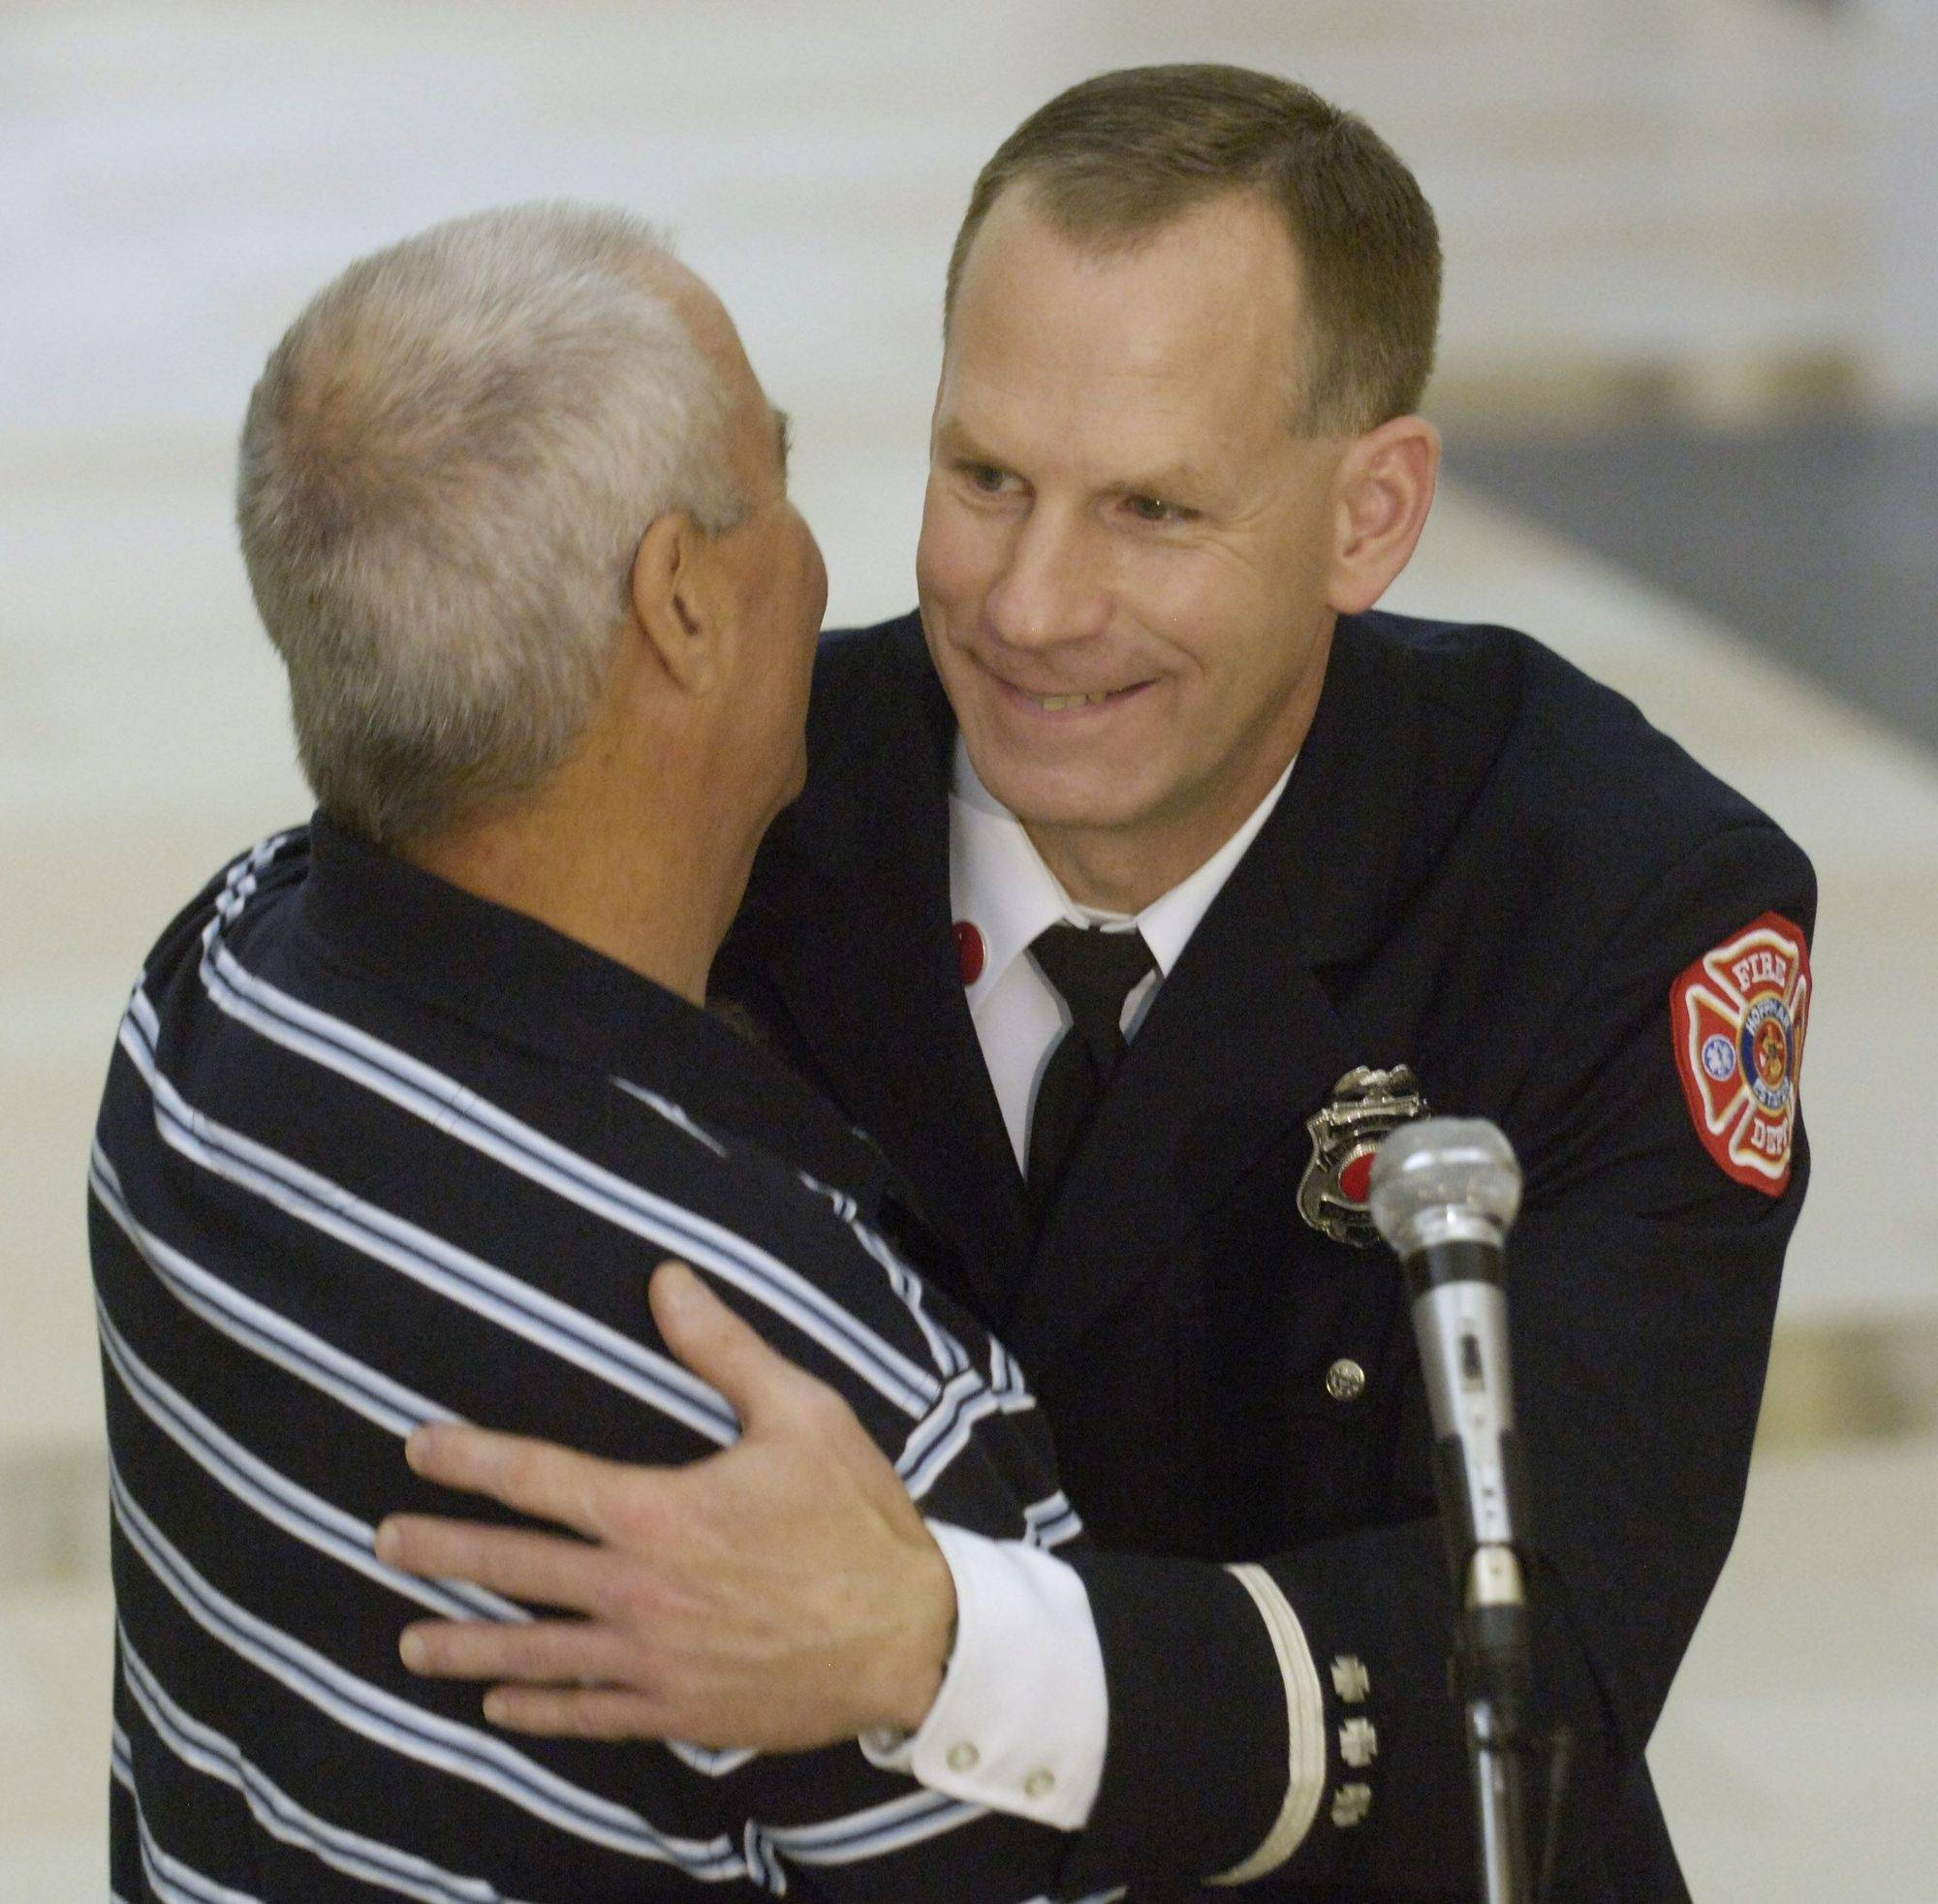 Jack Rosenberg of Arizona, left, hugs Lt. Don Richter of the Hoffman Estates Fire Department during a gathering at the Hoffman Estates Village Hall Saturday. Richter made a bone marrow donation five years ago that saved Rosenberg's life.